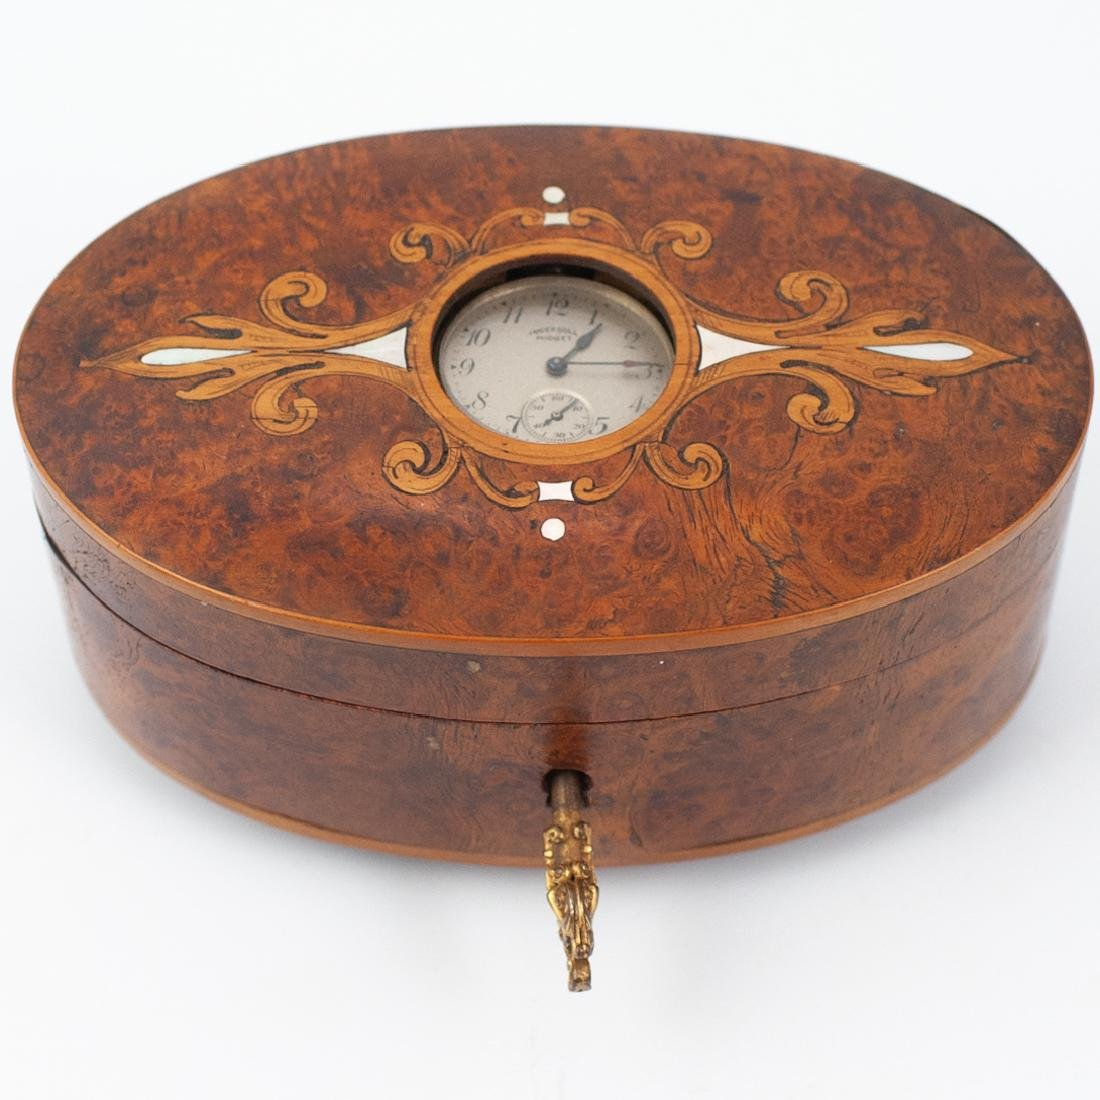 Vintage Burlwood and Mother of Pearl Inlaid Music Box